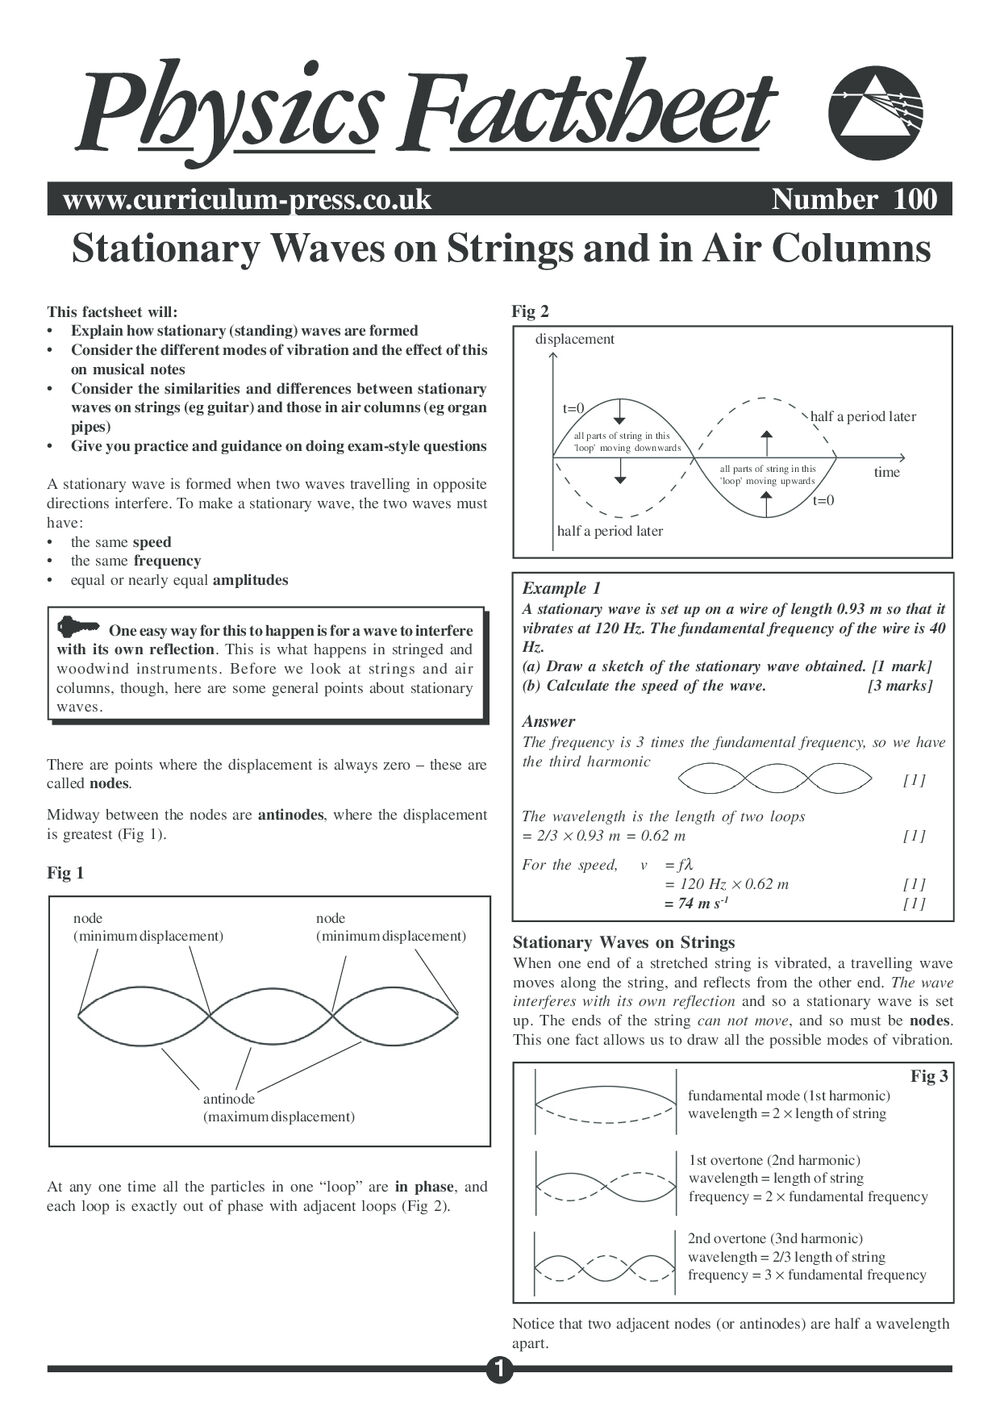 Stationary Waves On Strings and in Air Columns - Curriculum